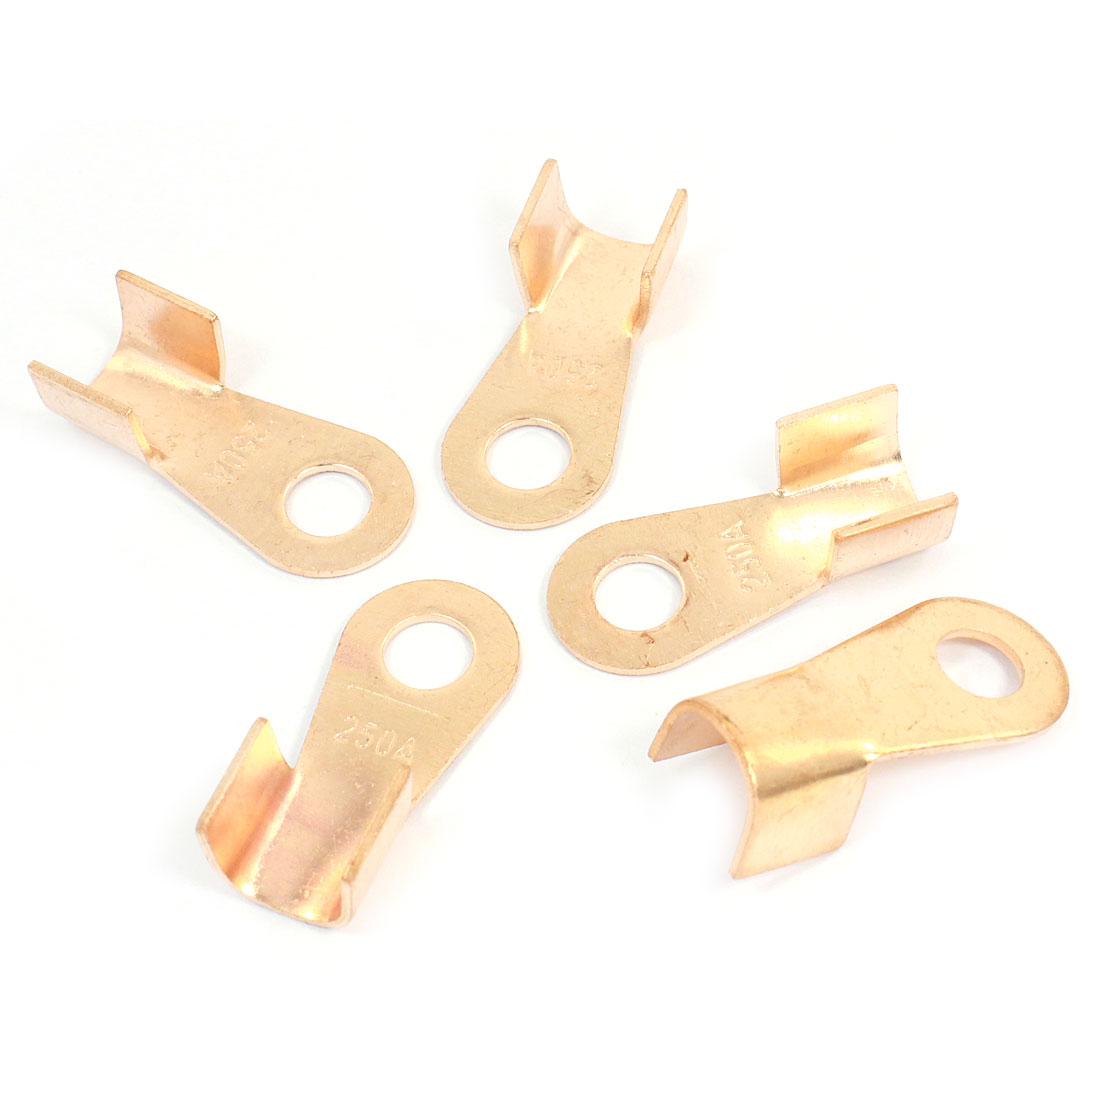 5 Pcs 250A Open Cable Connector Ring Tongue Copper Passing Through Terminals